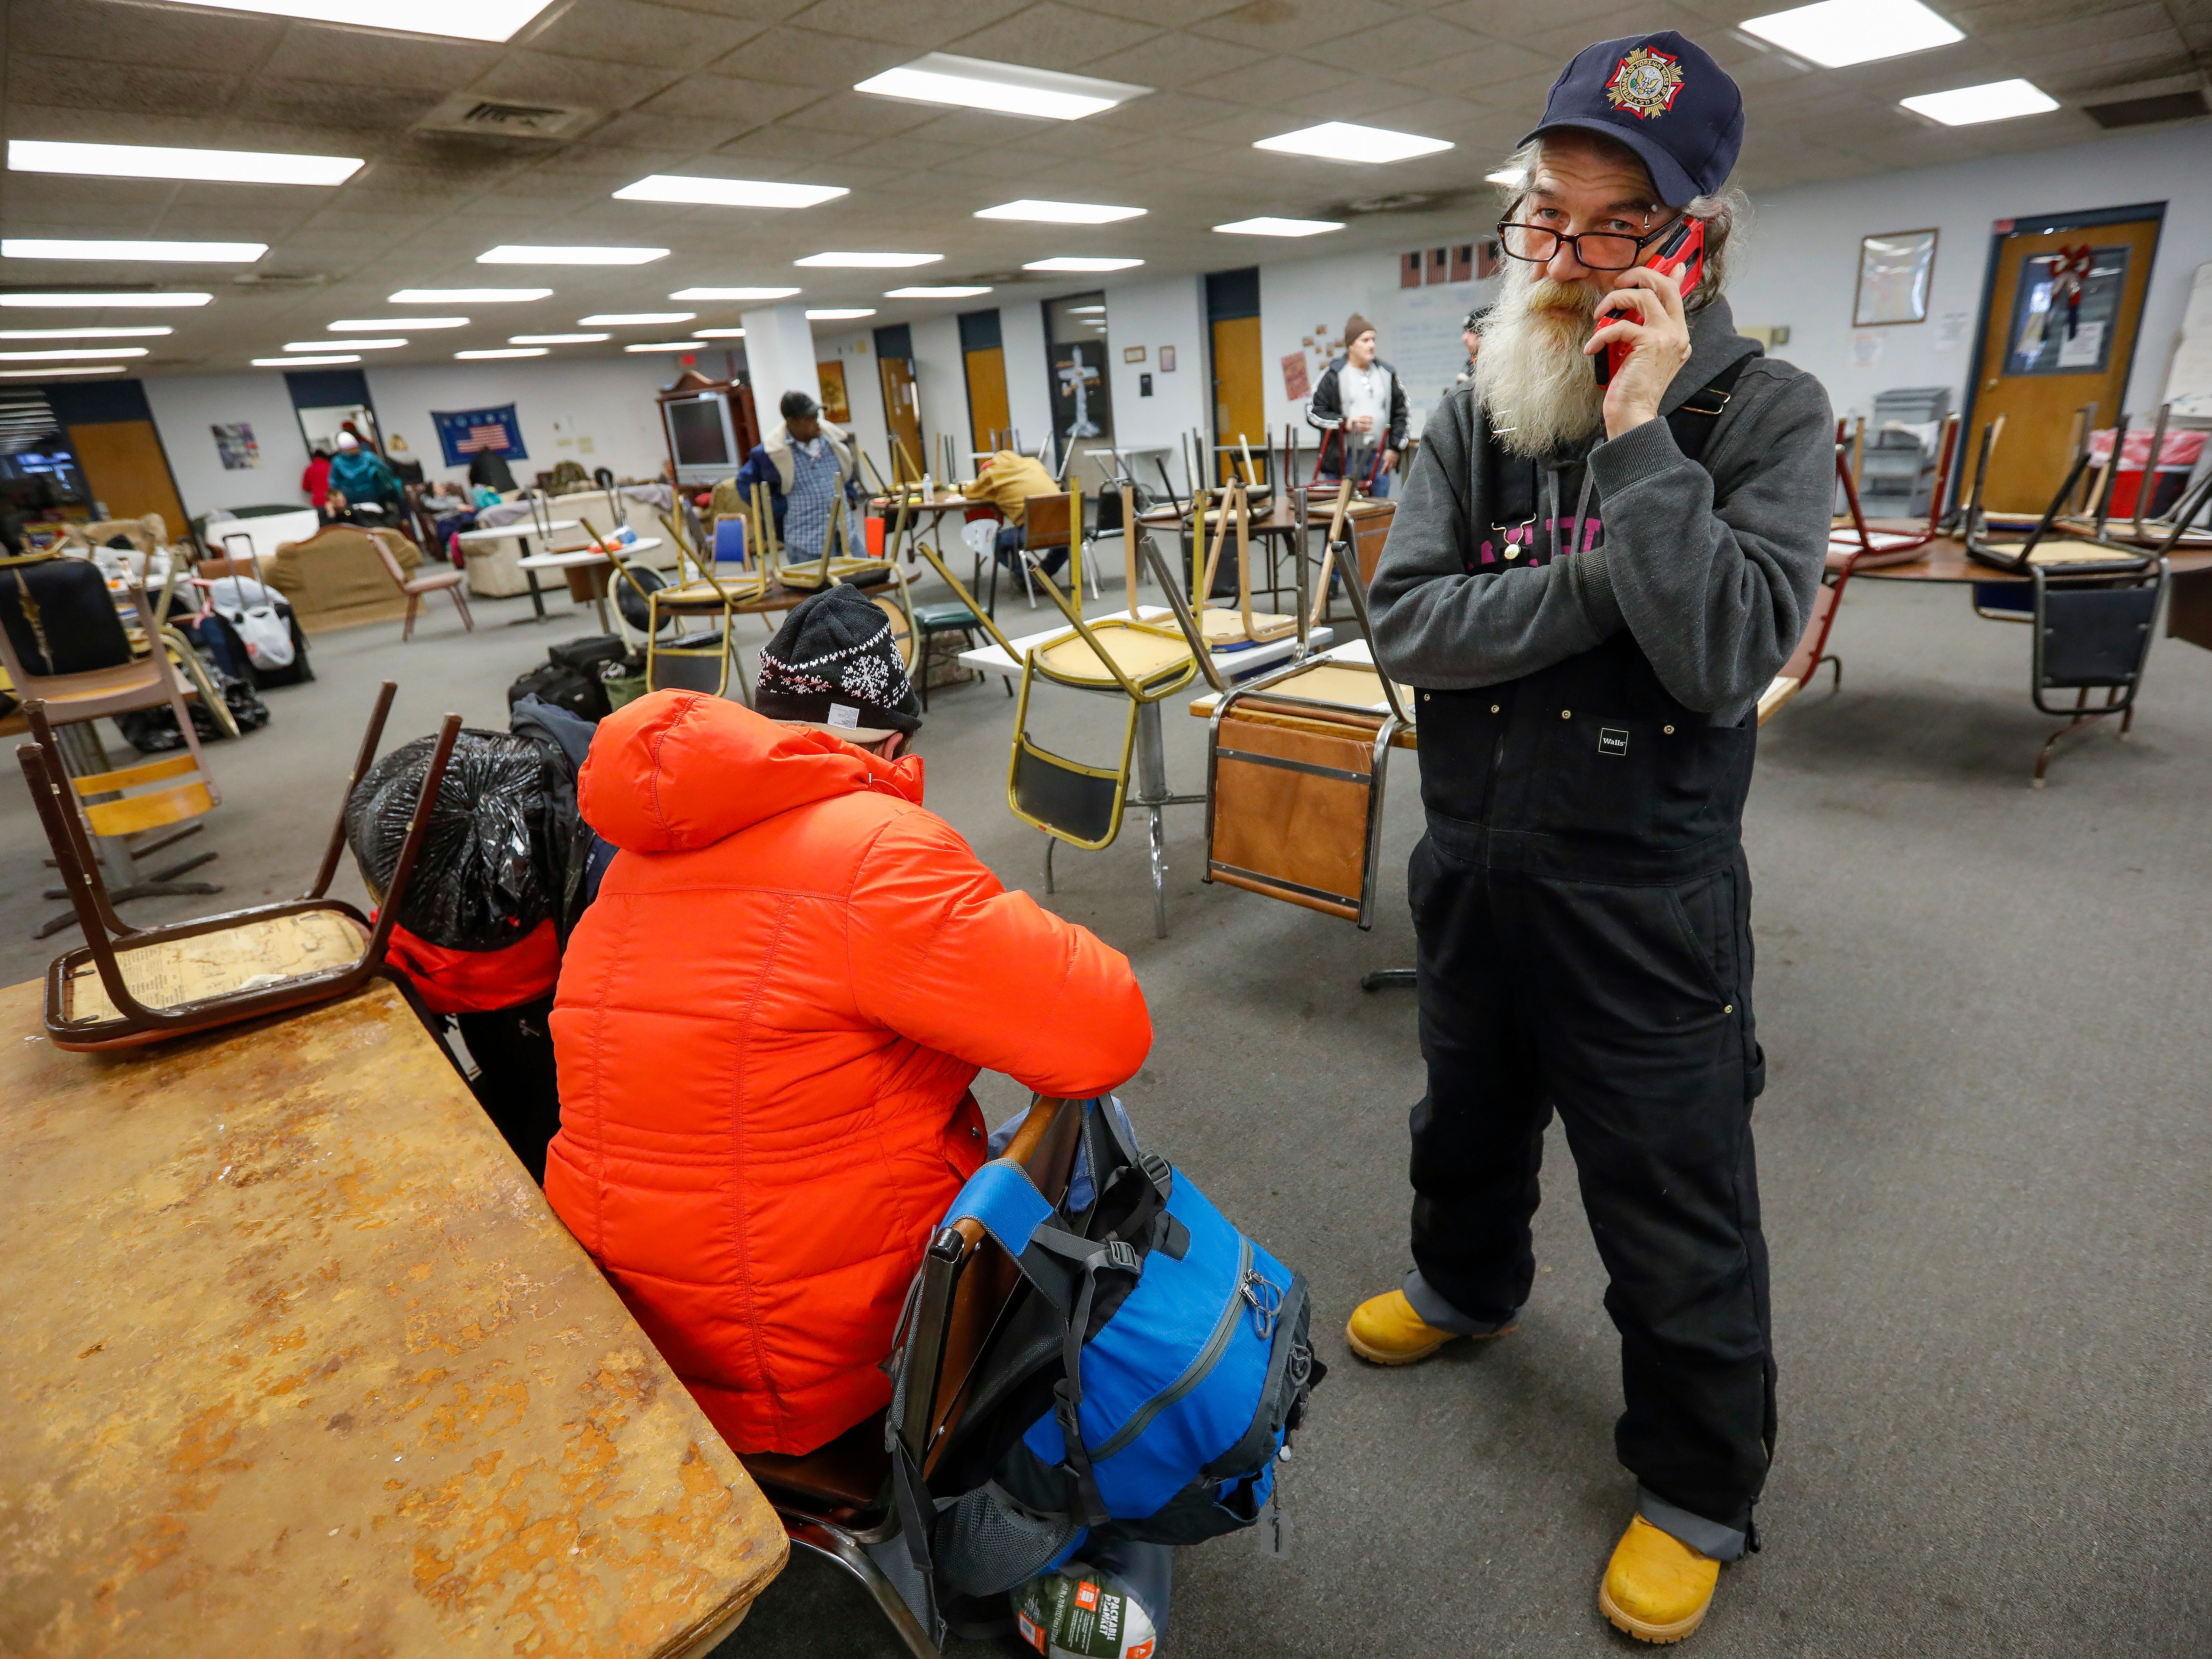 Gil Rife, who has been homeless for 3 years, talks on the phone with Stephanie Appleby, of NAMI, inside the Veteran's Coming Home Center on Wednesday, Feb. 20, 2019.